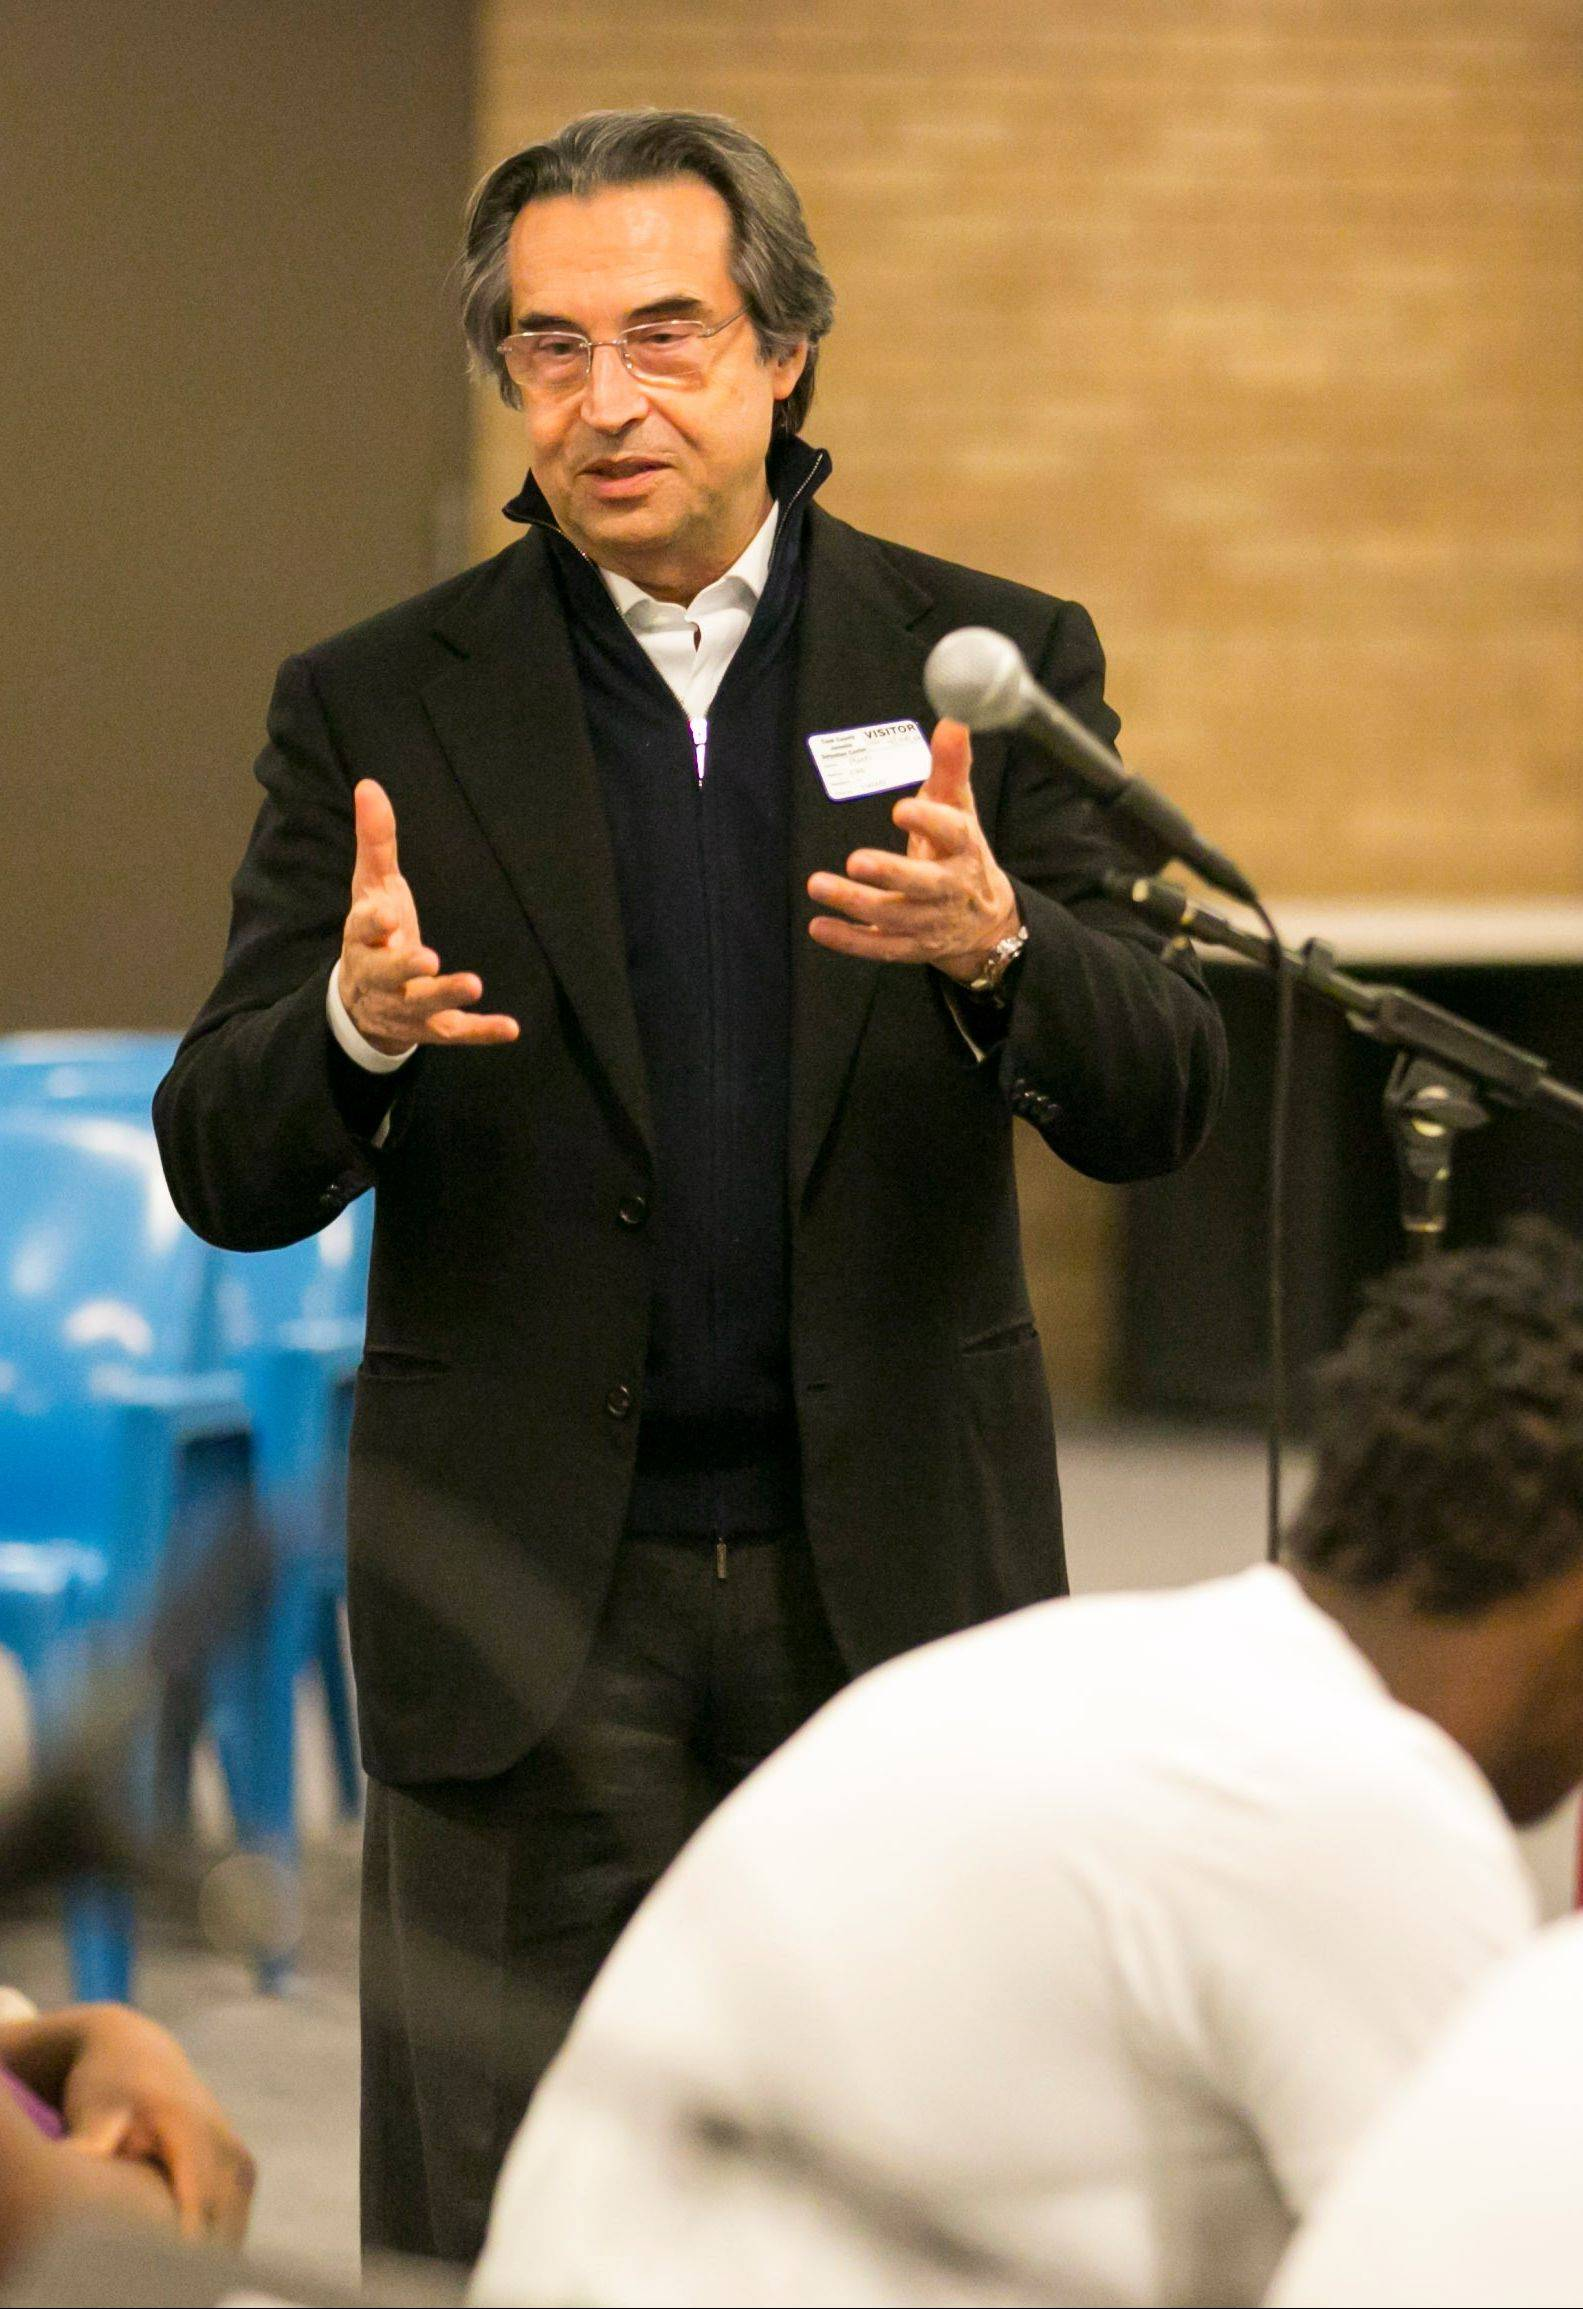 Chicago Symphony Orchestra Music Director Riccardo Muti talks to Cook County Juvenile Detention Center inmates following their music performance as part of the CSO�s Citizen Musician program Sunday.